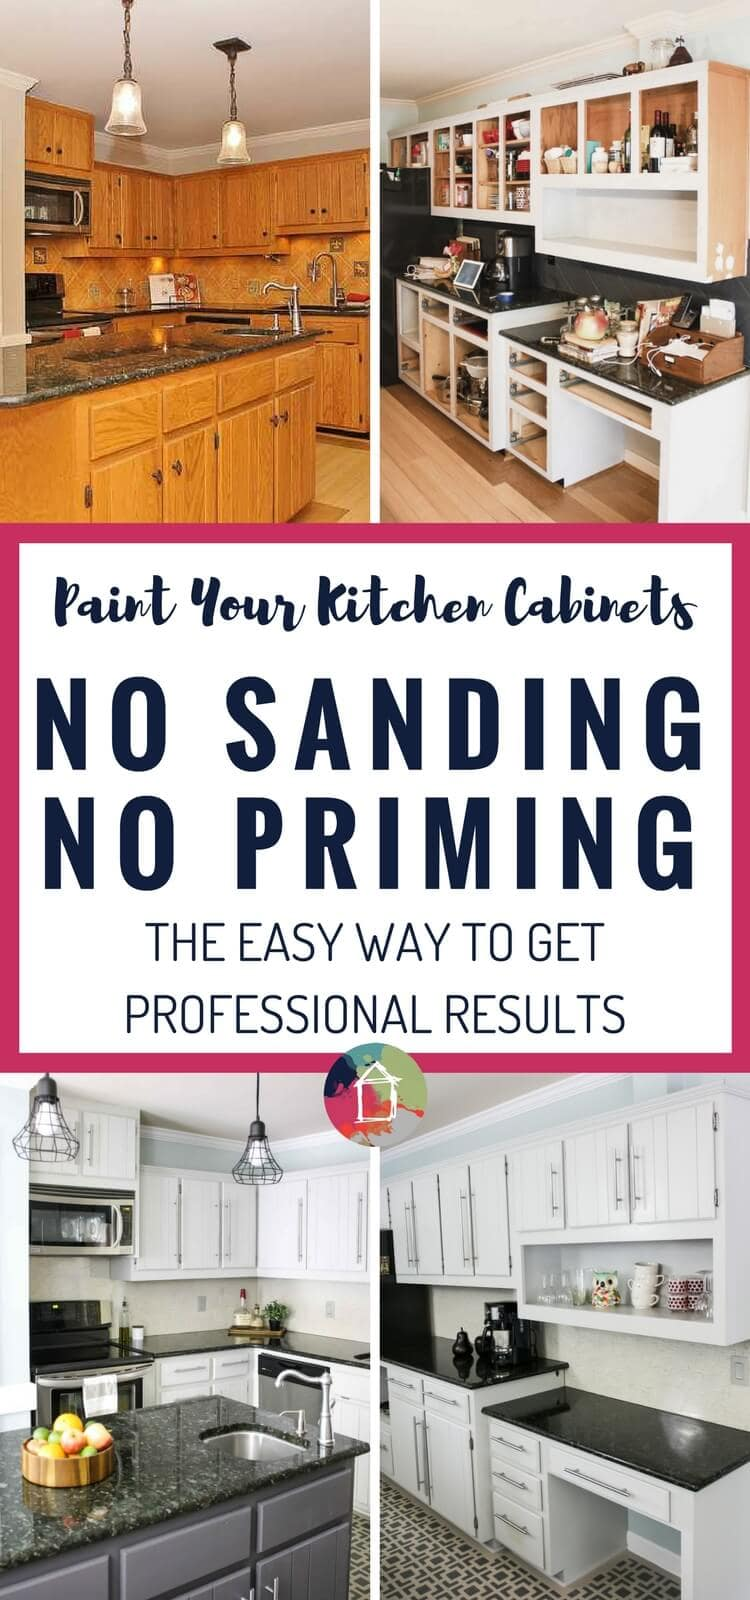 You Can Paint Your Kitchen Cabinets Without Priming Or Sanding Wooo Hooo